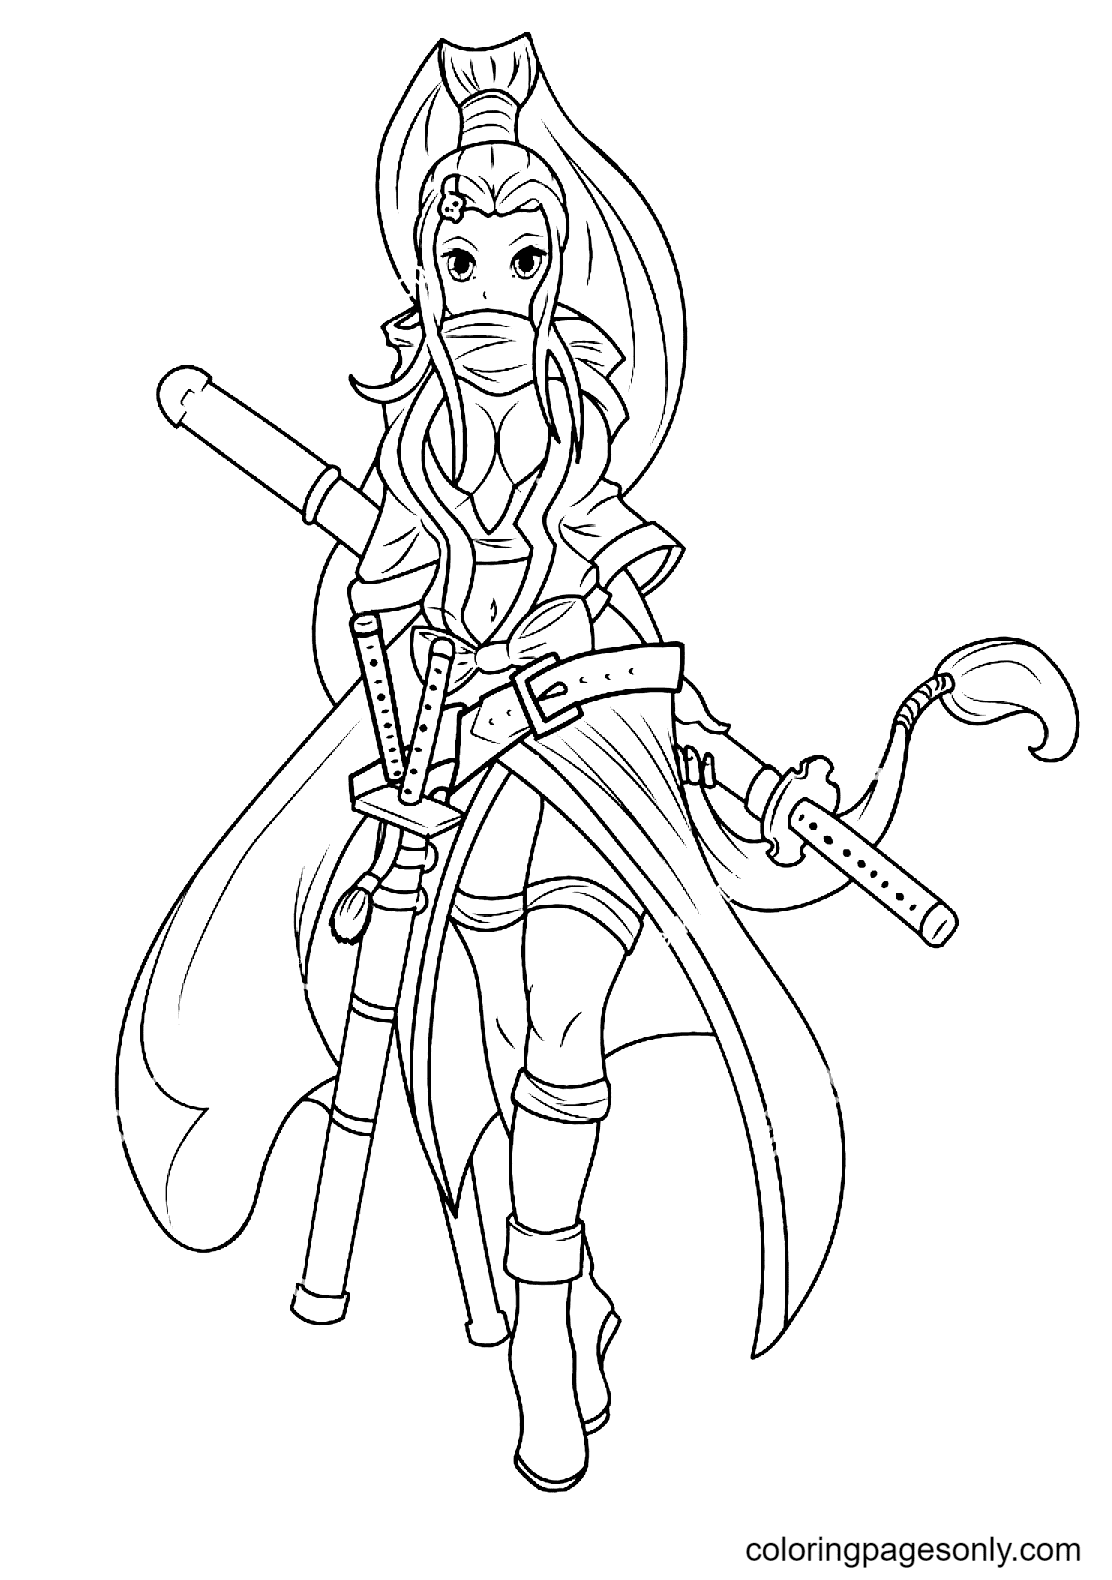 Dangerous Warrior Girl Coloring Page